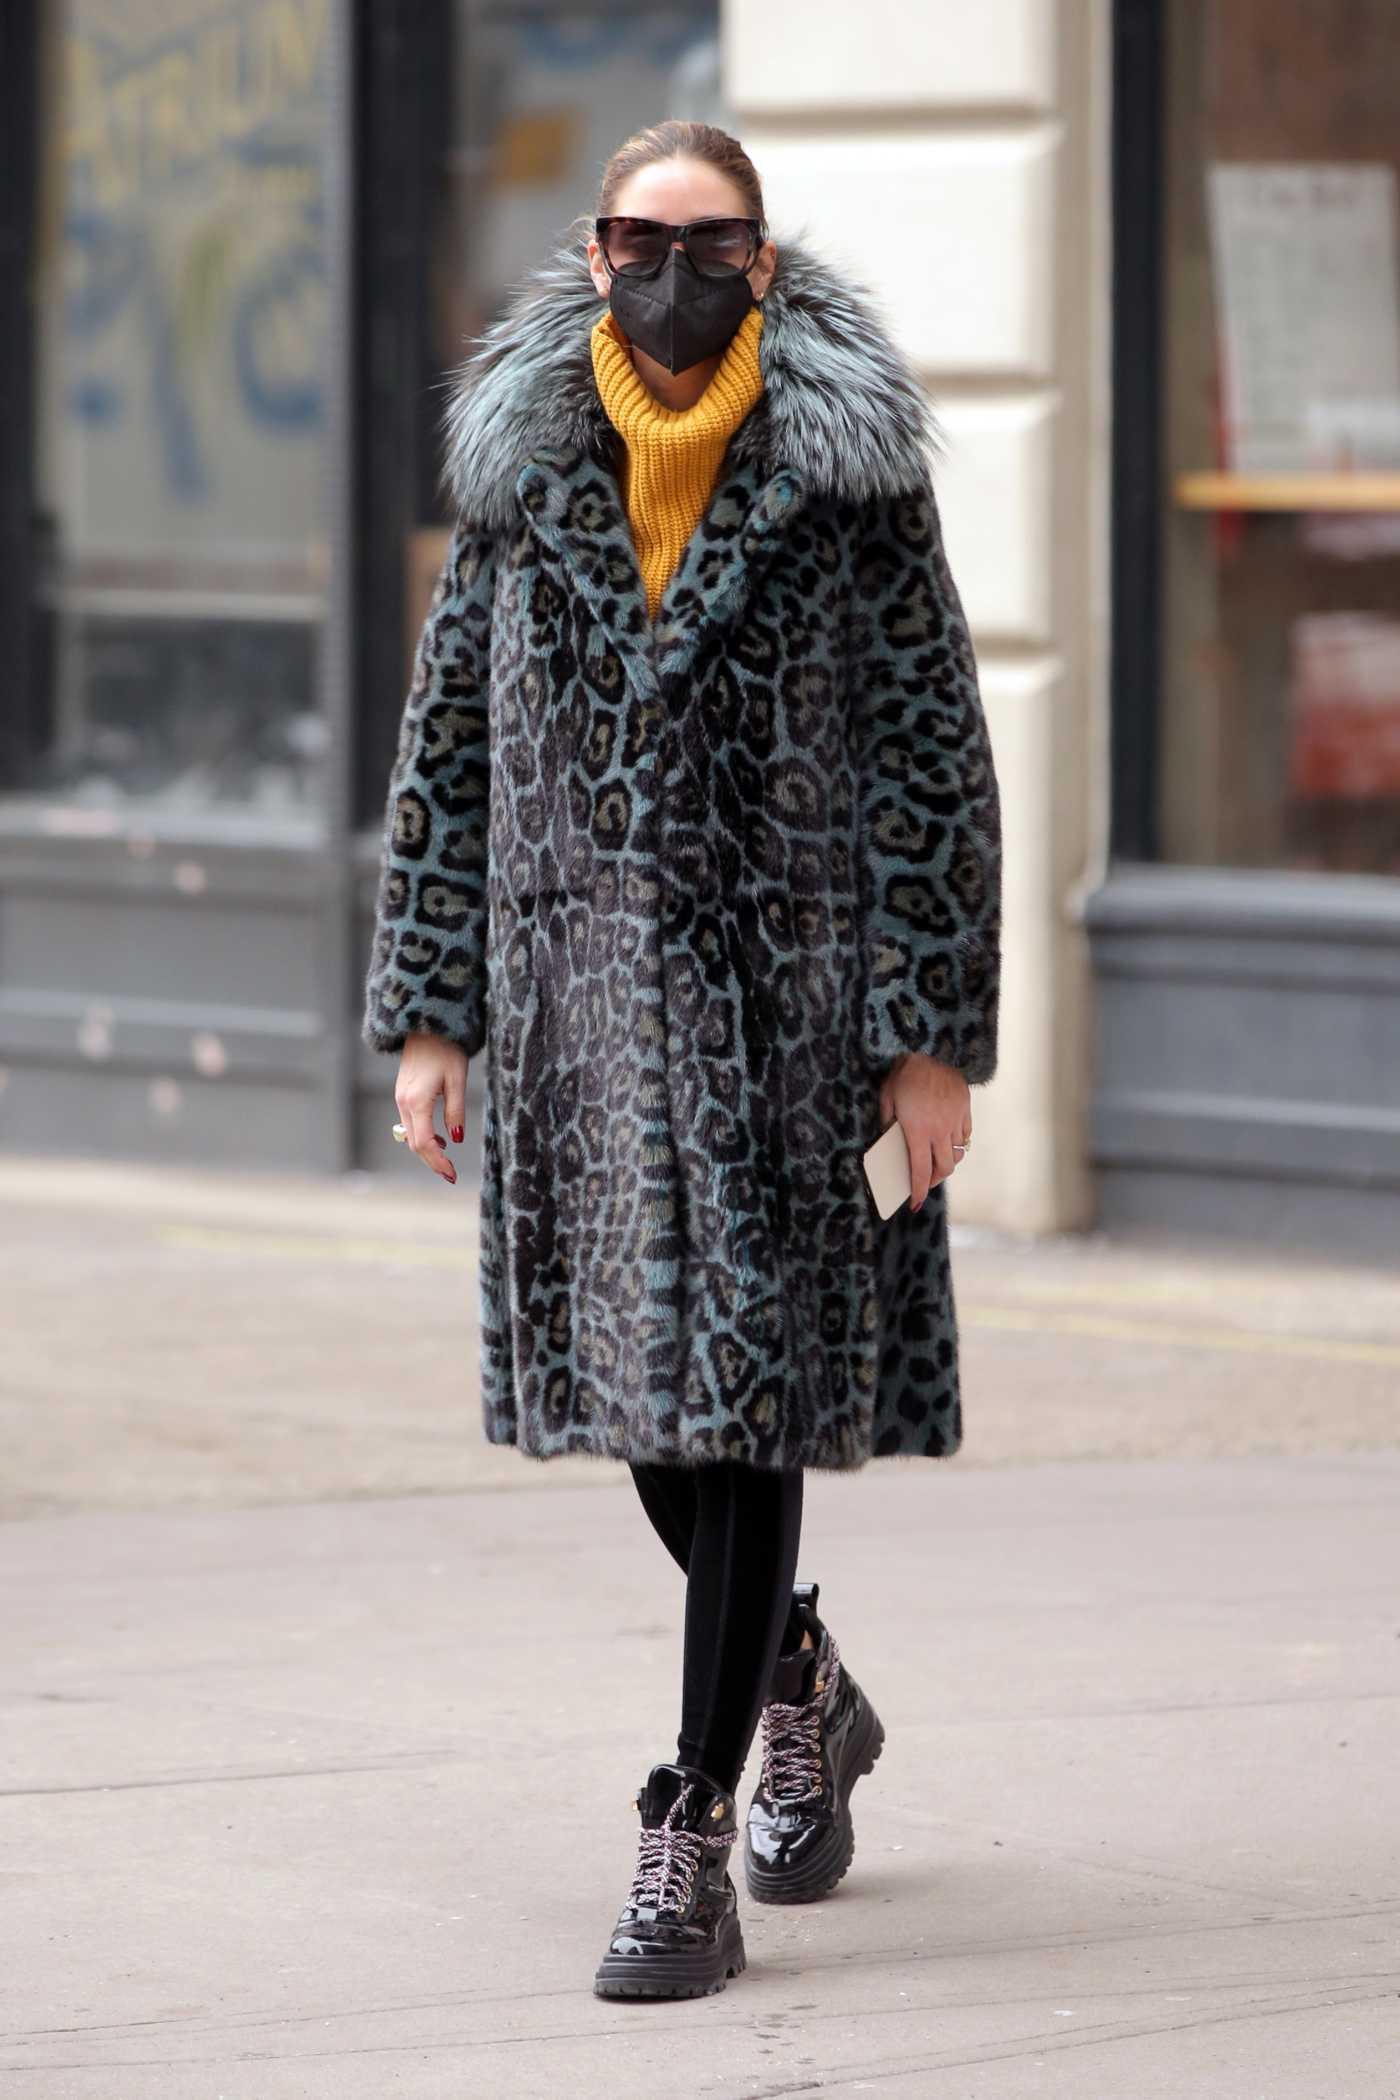 Olivia Palermo in an Animal Print Fur Coat Was Seen Out in New York 02/12/2021